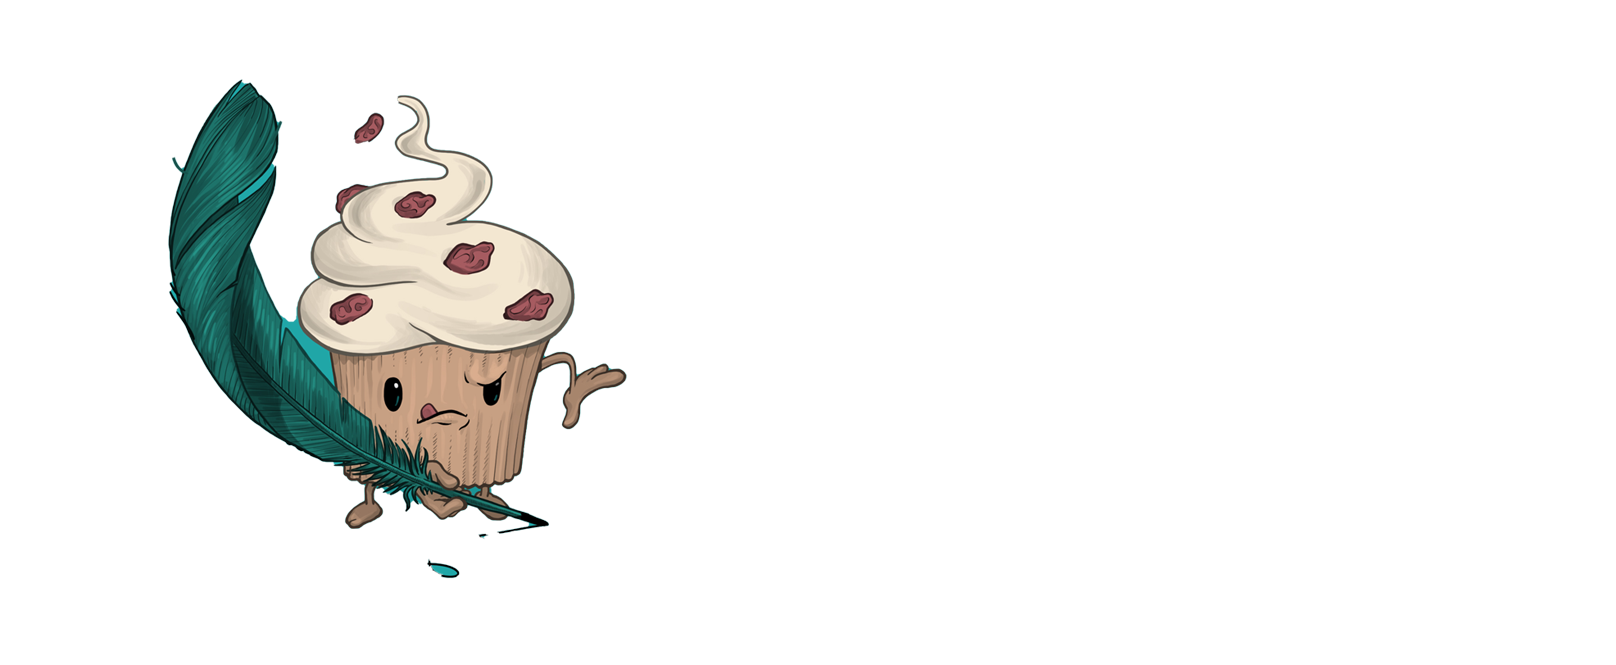 Plumpek illustration